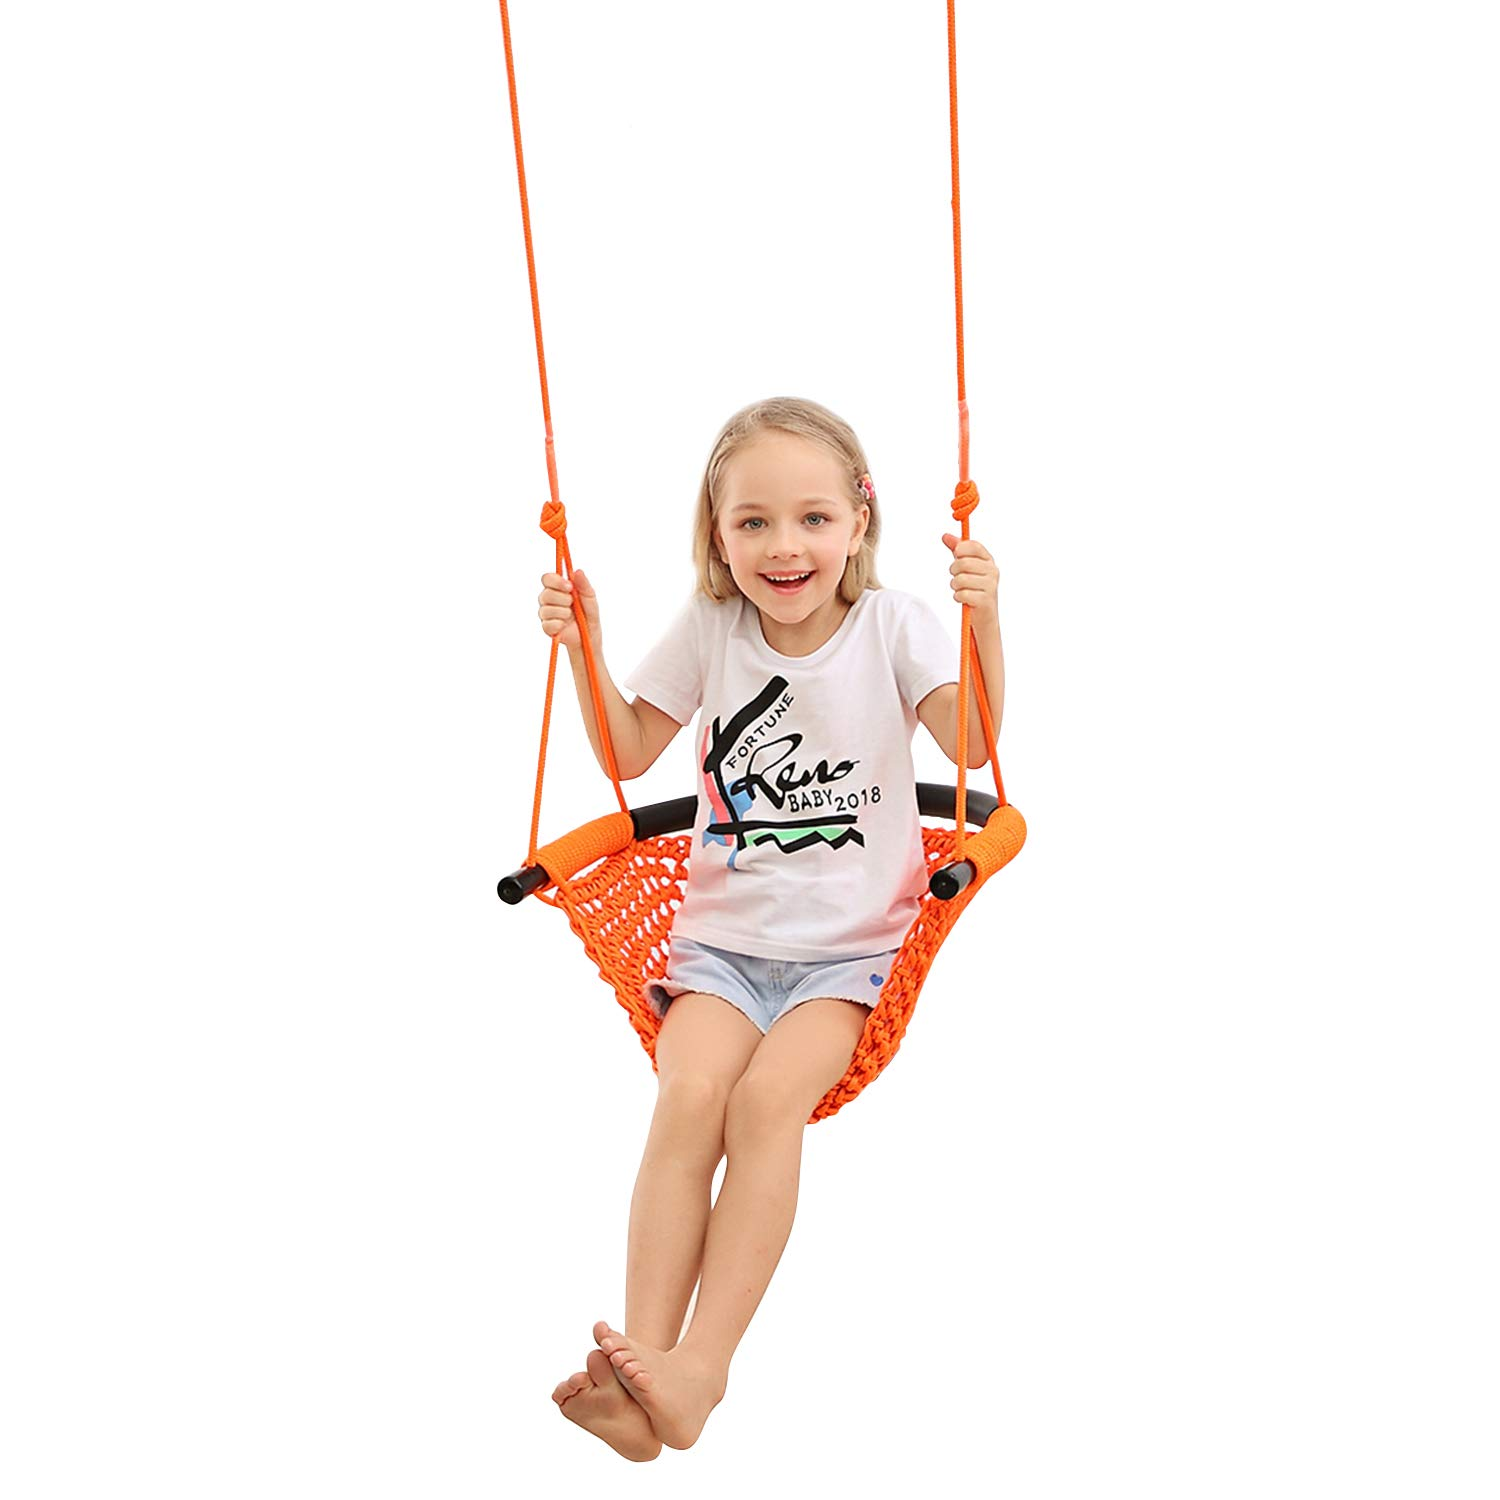 JKsmart Swing Seat for Kids Heavy Duty Rope Play Secure Children Swing Set,Perfect for Indoor,Outdoor,Playground,Home,Tree,with Snap Hooks and Swing Straps,440 lbs Capacity,Orange(Patent Pending) by JKsmart